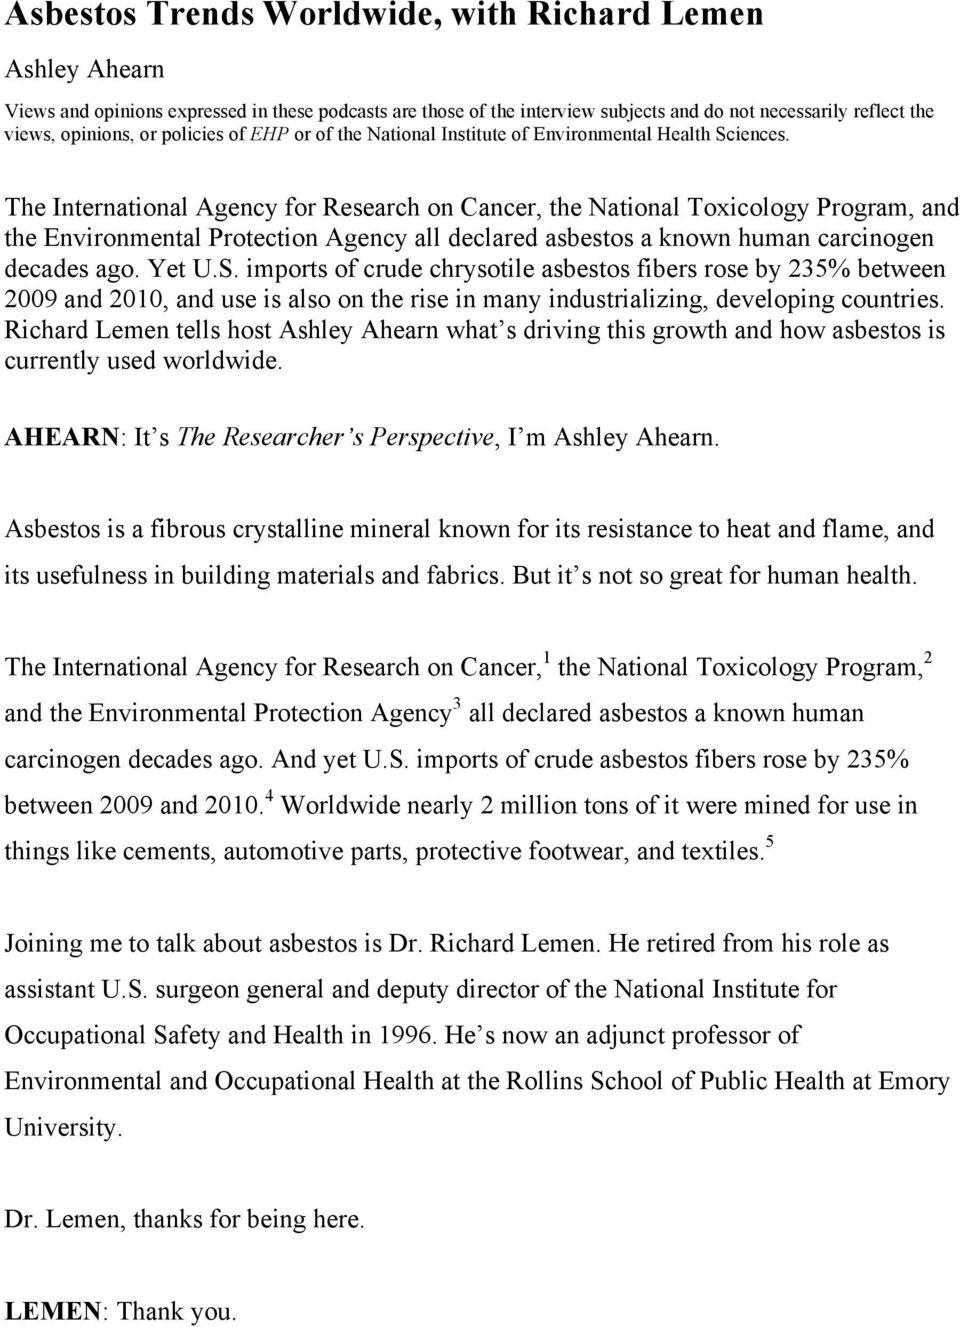 The International Agency for Research on Cancer, the National Toxicology Program, and the Environmental Protection Agency all declared asbestos a known human carcinogen decades ago. Yet U.S.